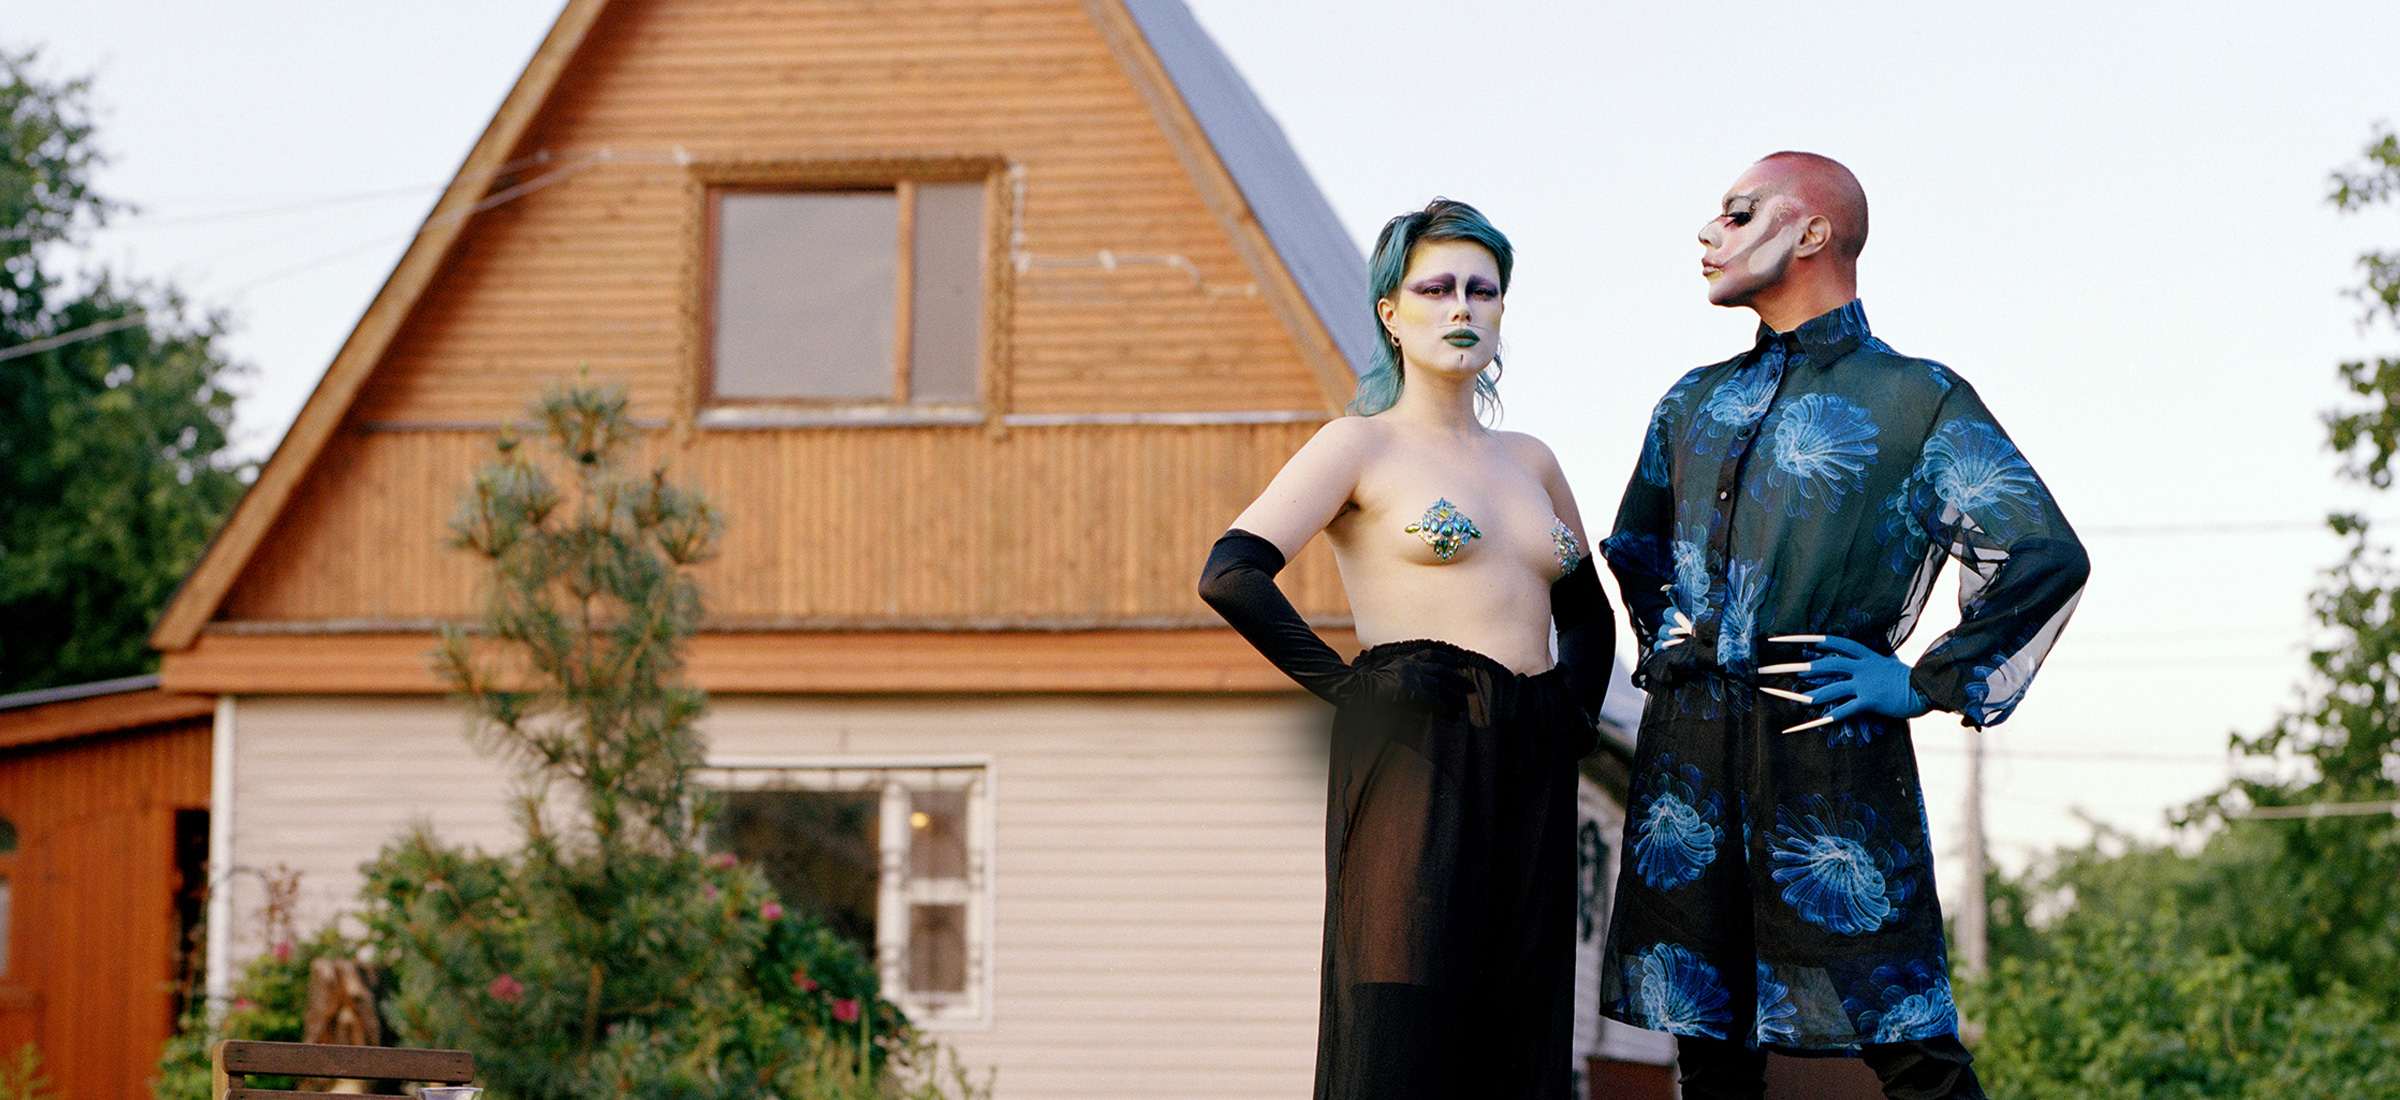 Dragzina: join the queer artists claiming Russia's summer houses as their own